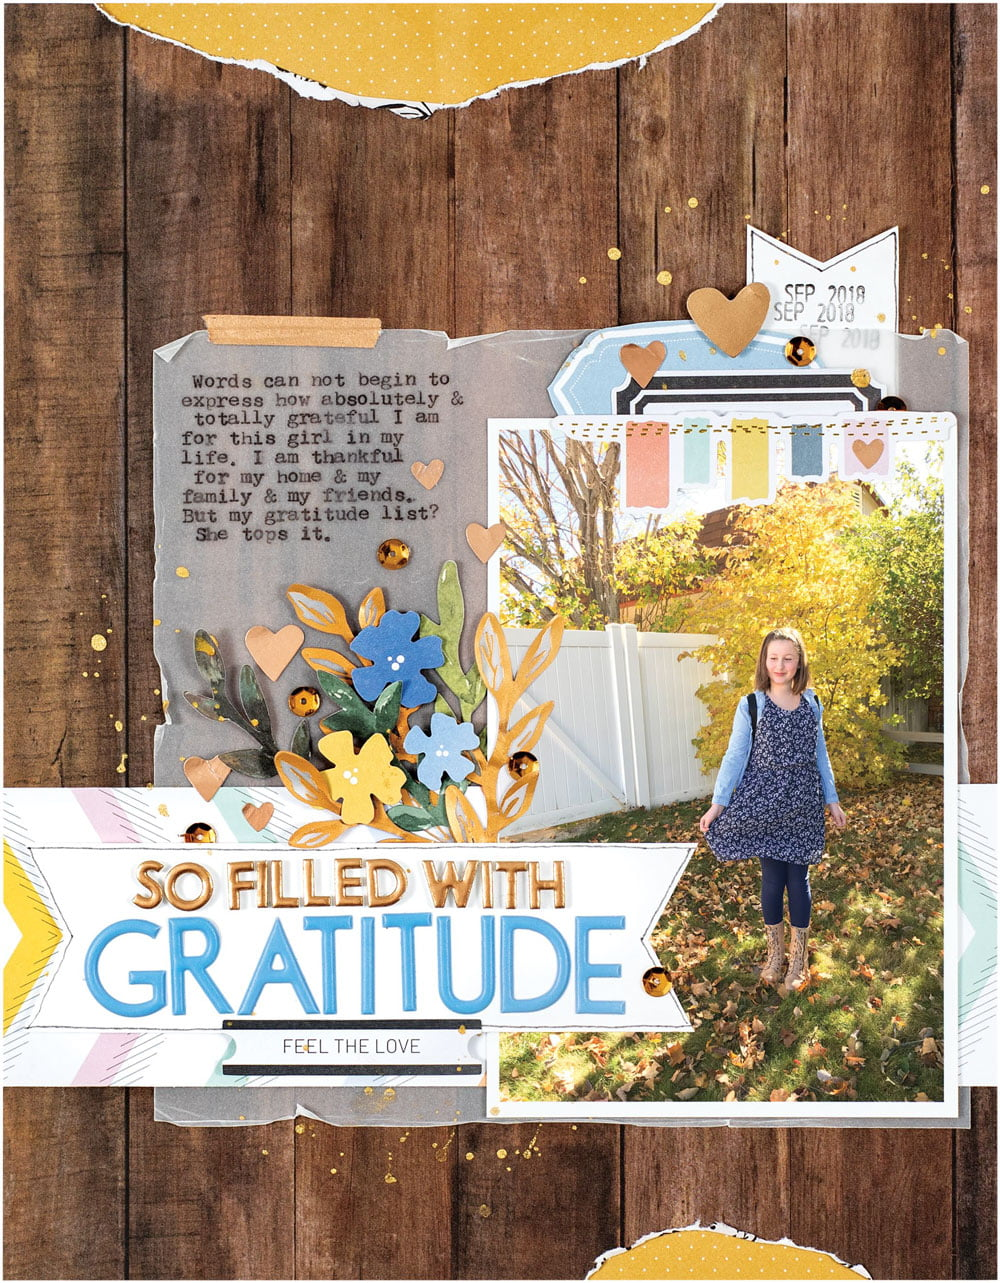 SCT Fall 2018 - So Filled With Gratitude by Jen Schow